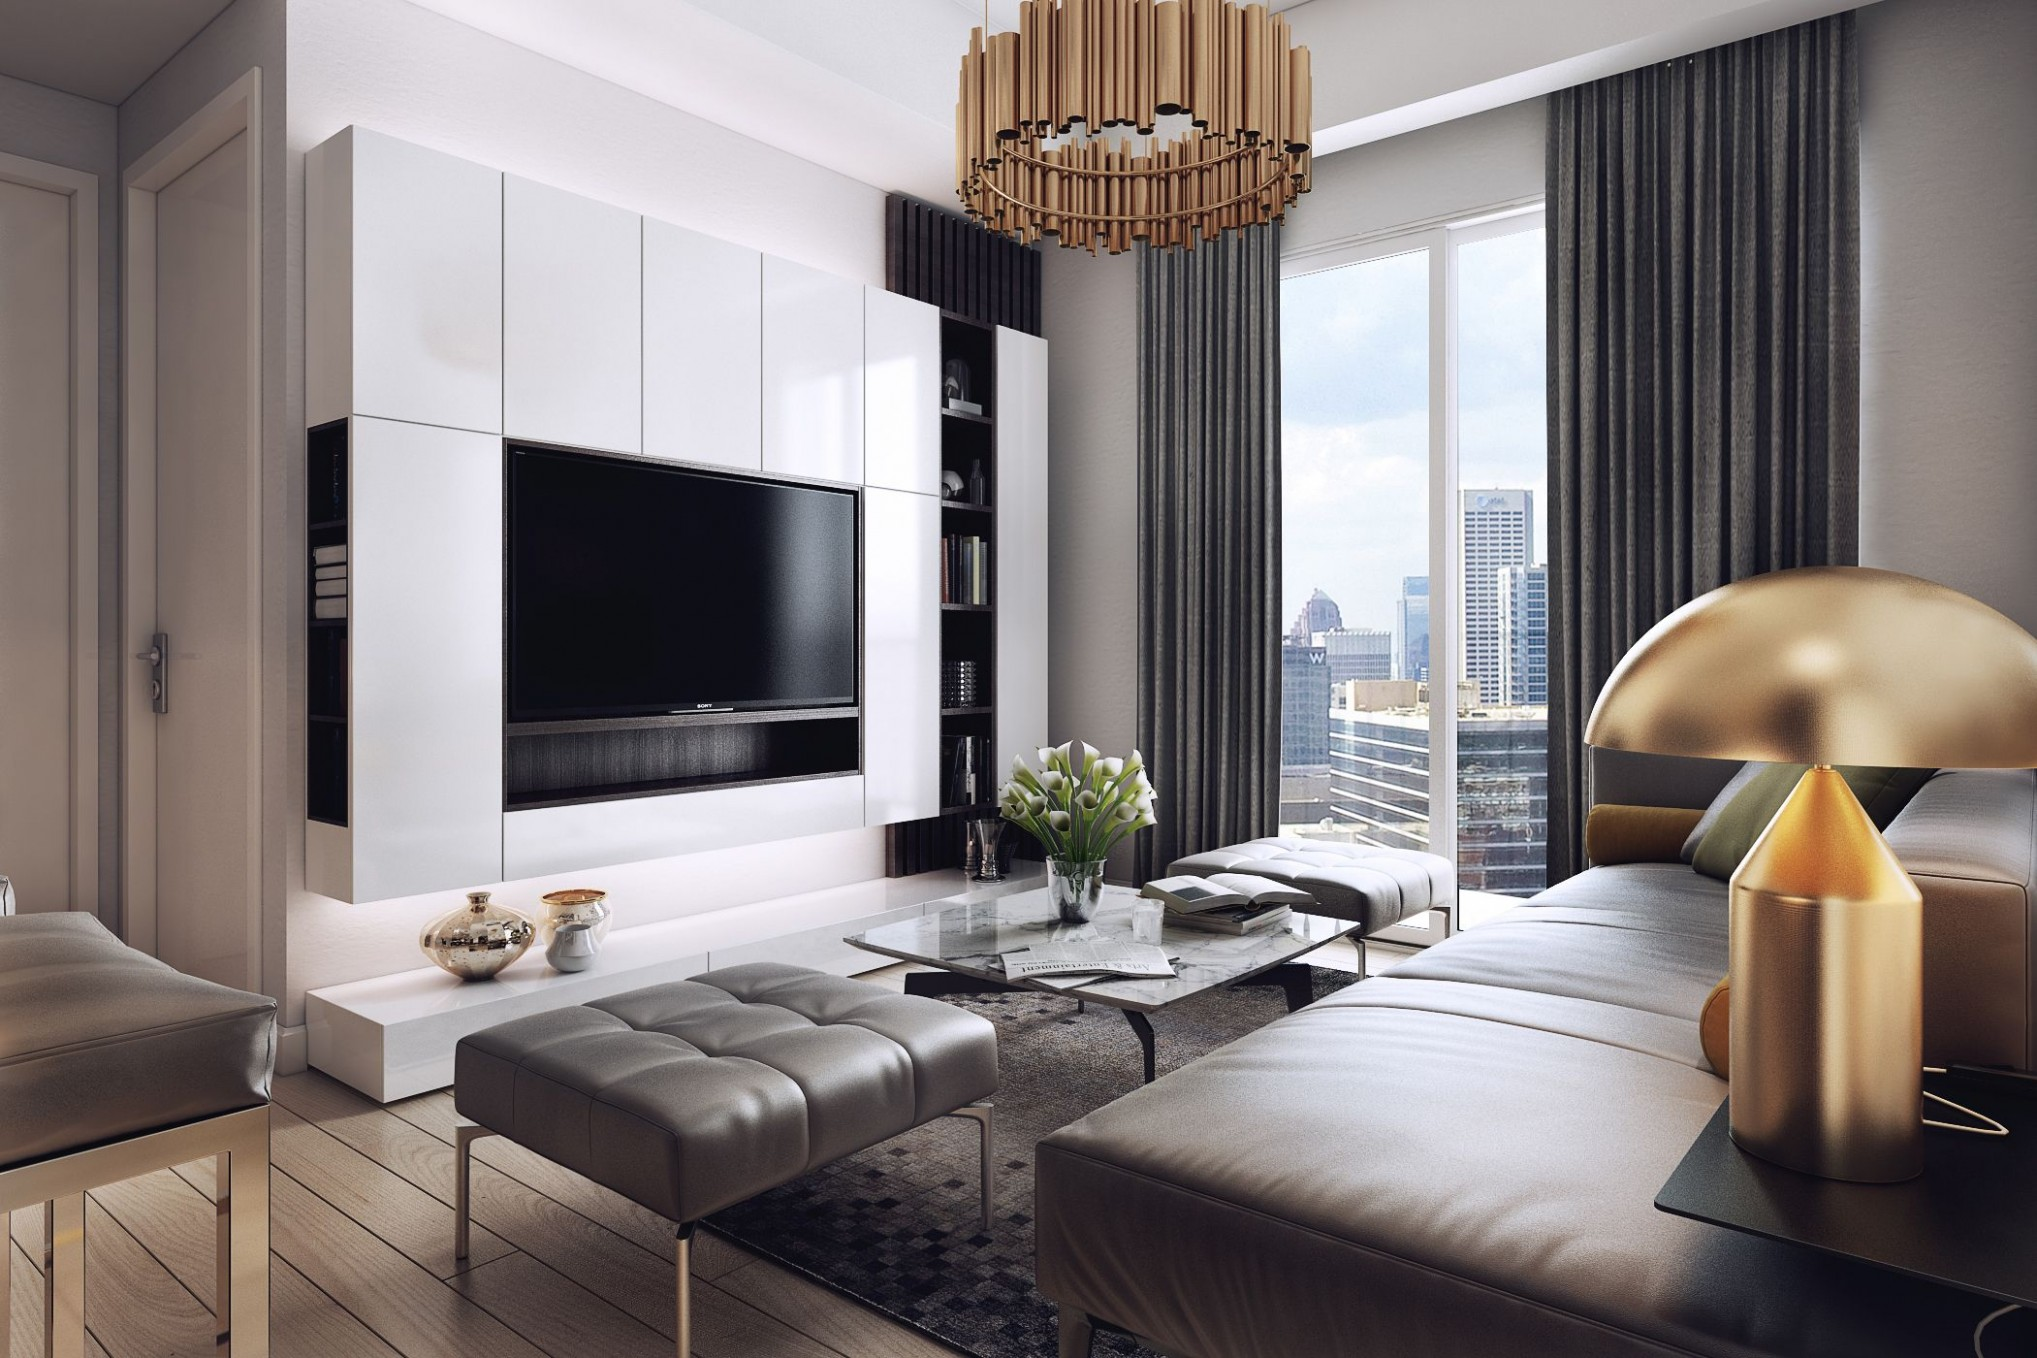 Luxurious Apartment with Dark Interiors and Stunning Lighting/ SEE  - Apartment Home Design